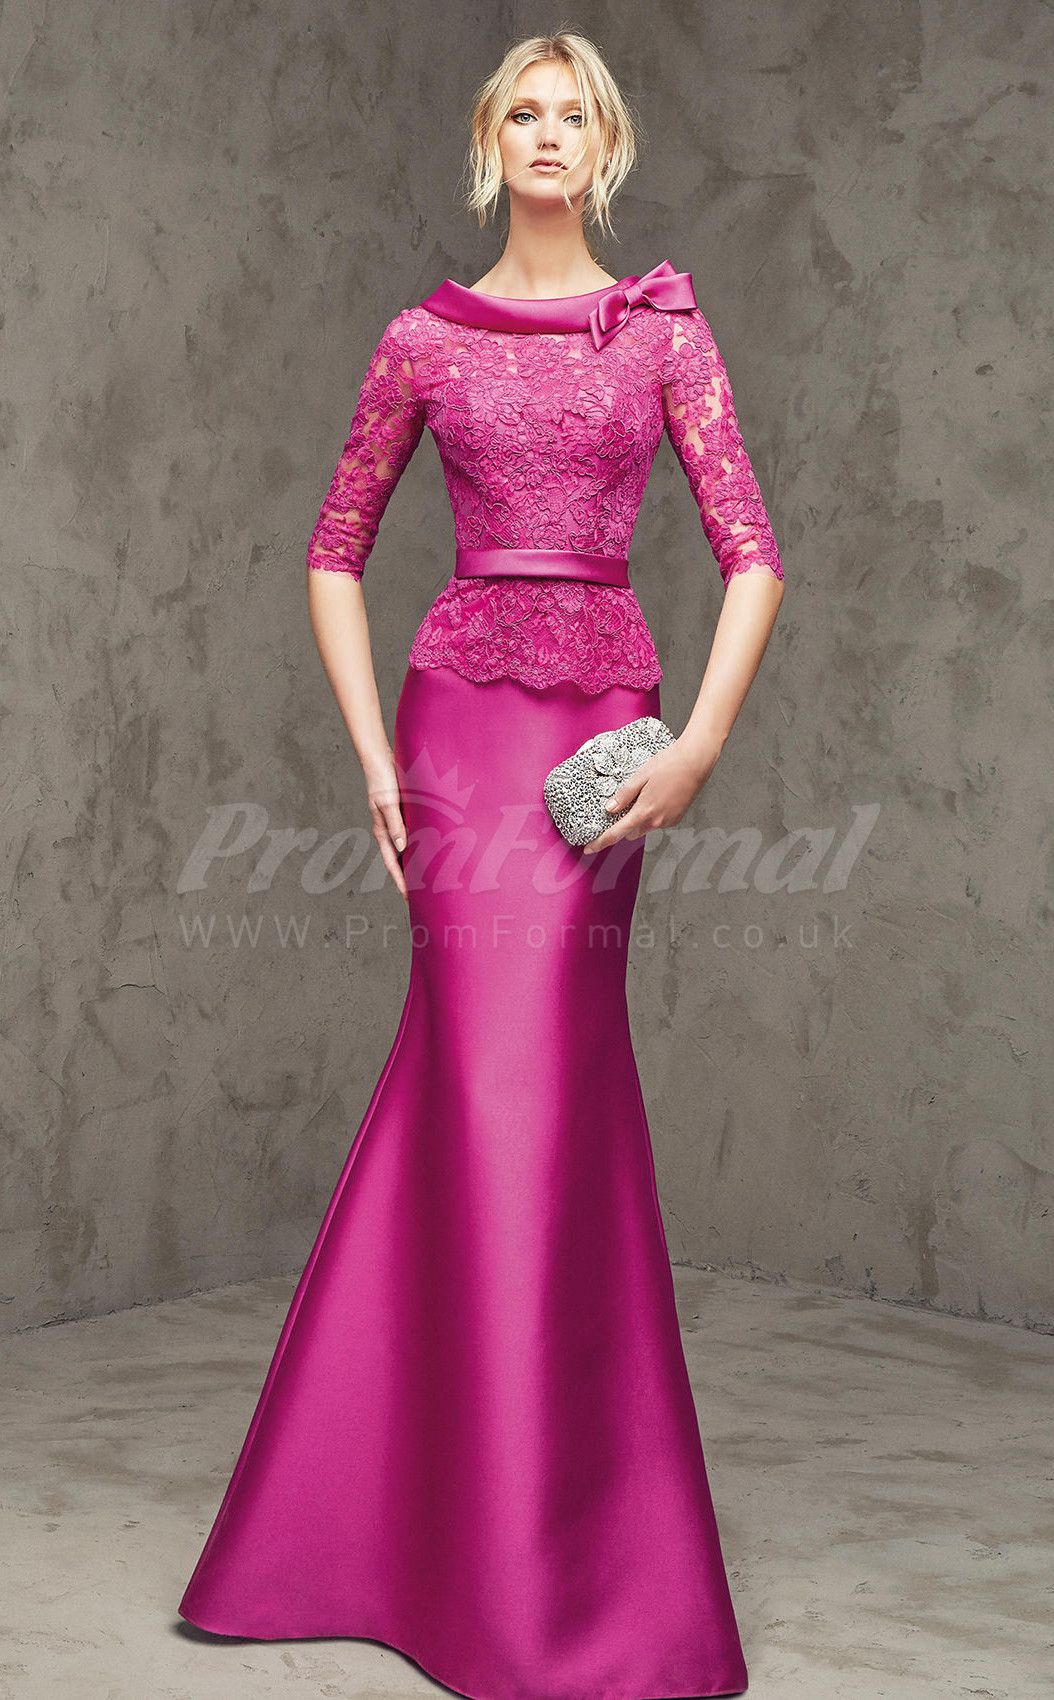 Mother of the bride beach dresses for weddings  Timeless Fuchsia SatinLace Sweep Train Prom Dresses PRJT